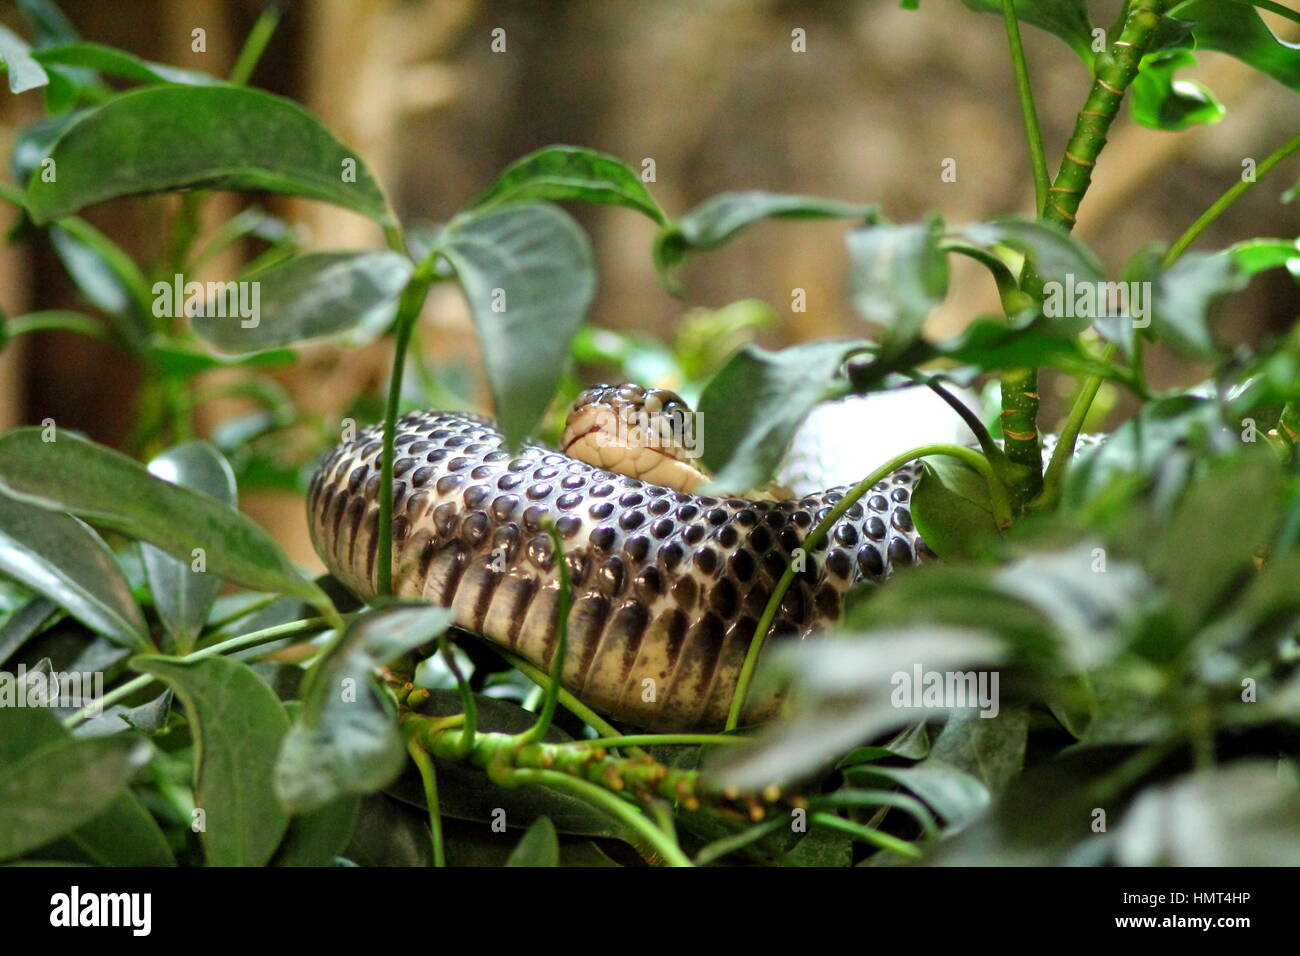 Brown Toxic Snake In Terrarium With Green Plants Stock Photo